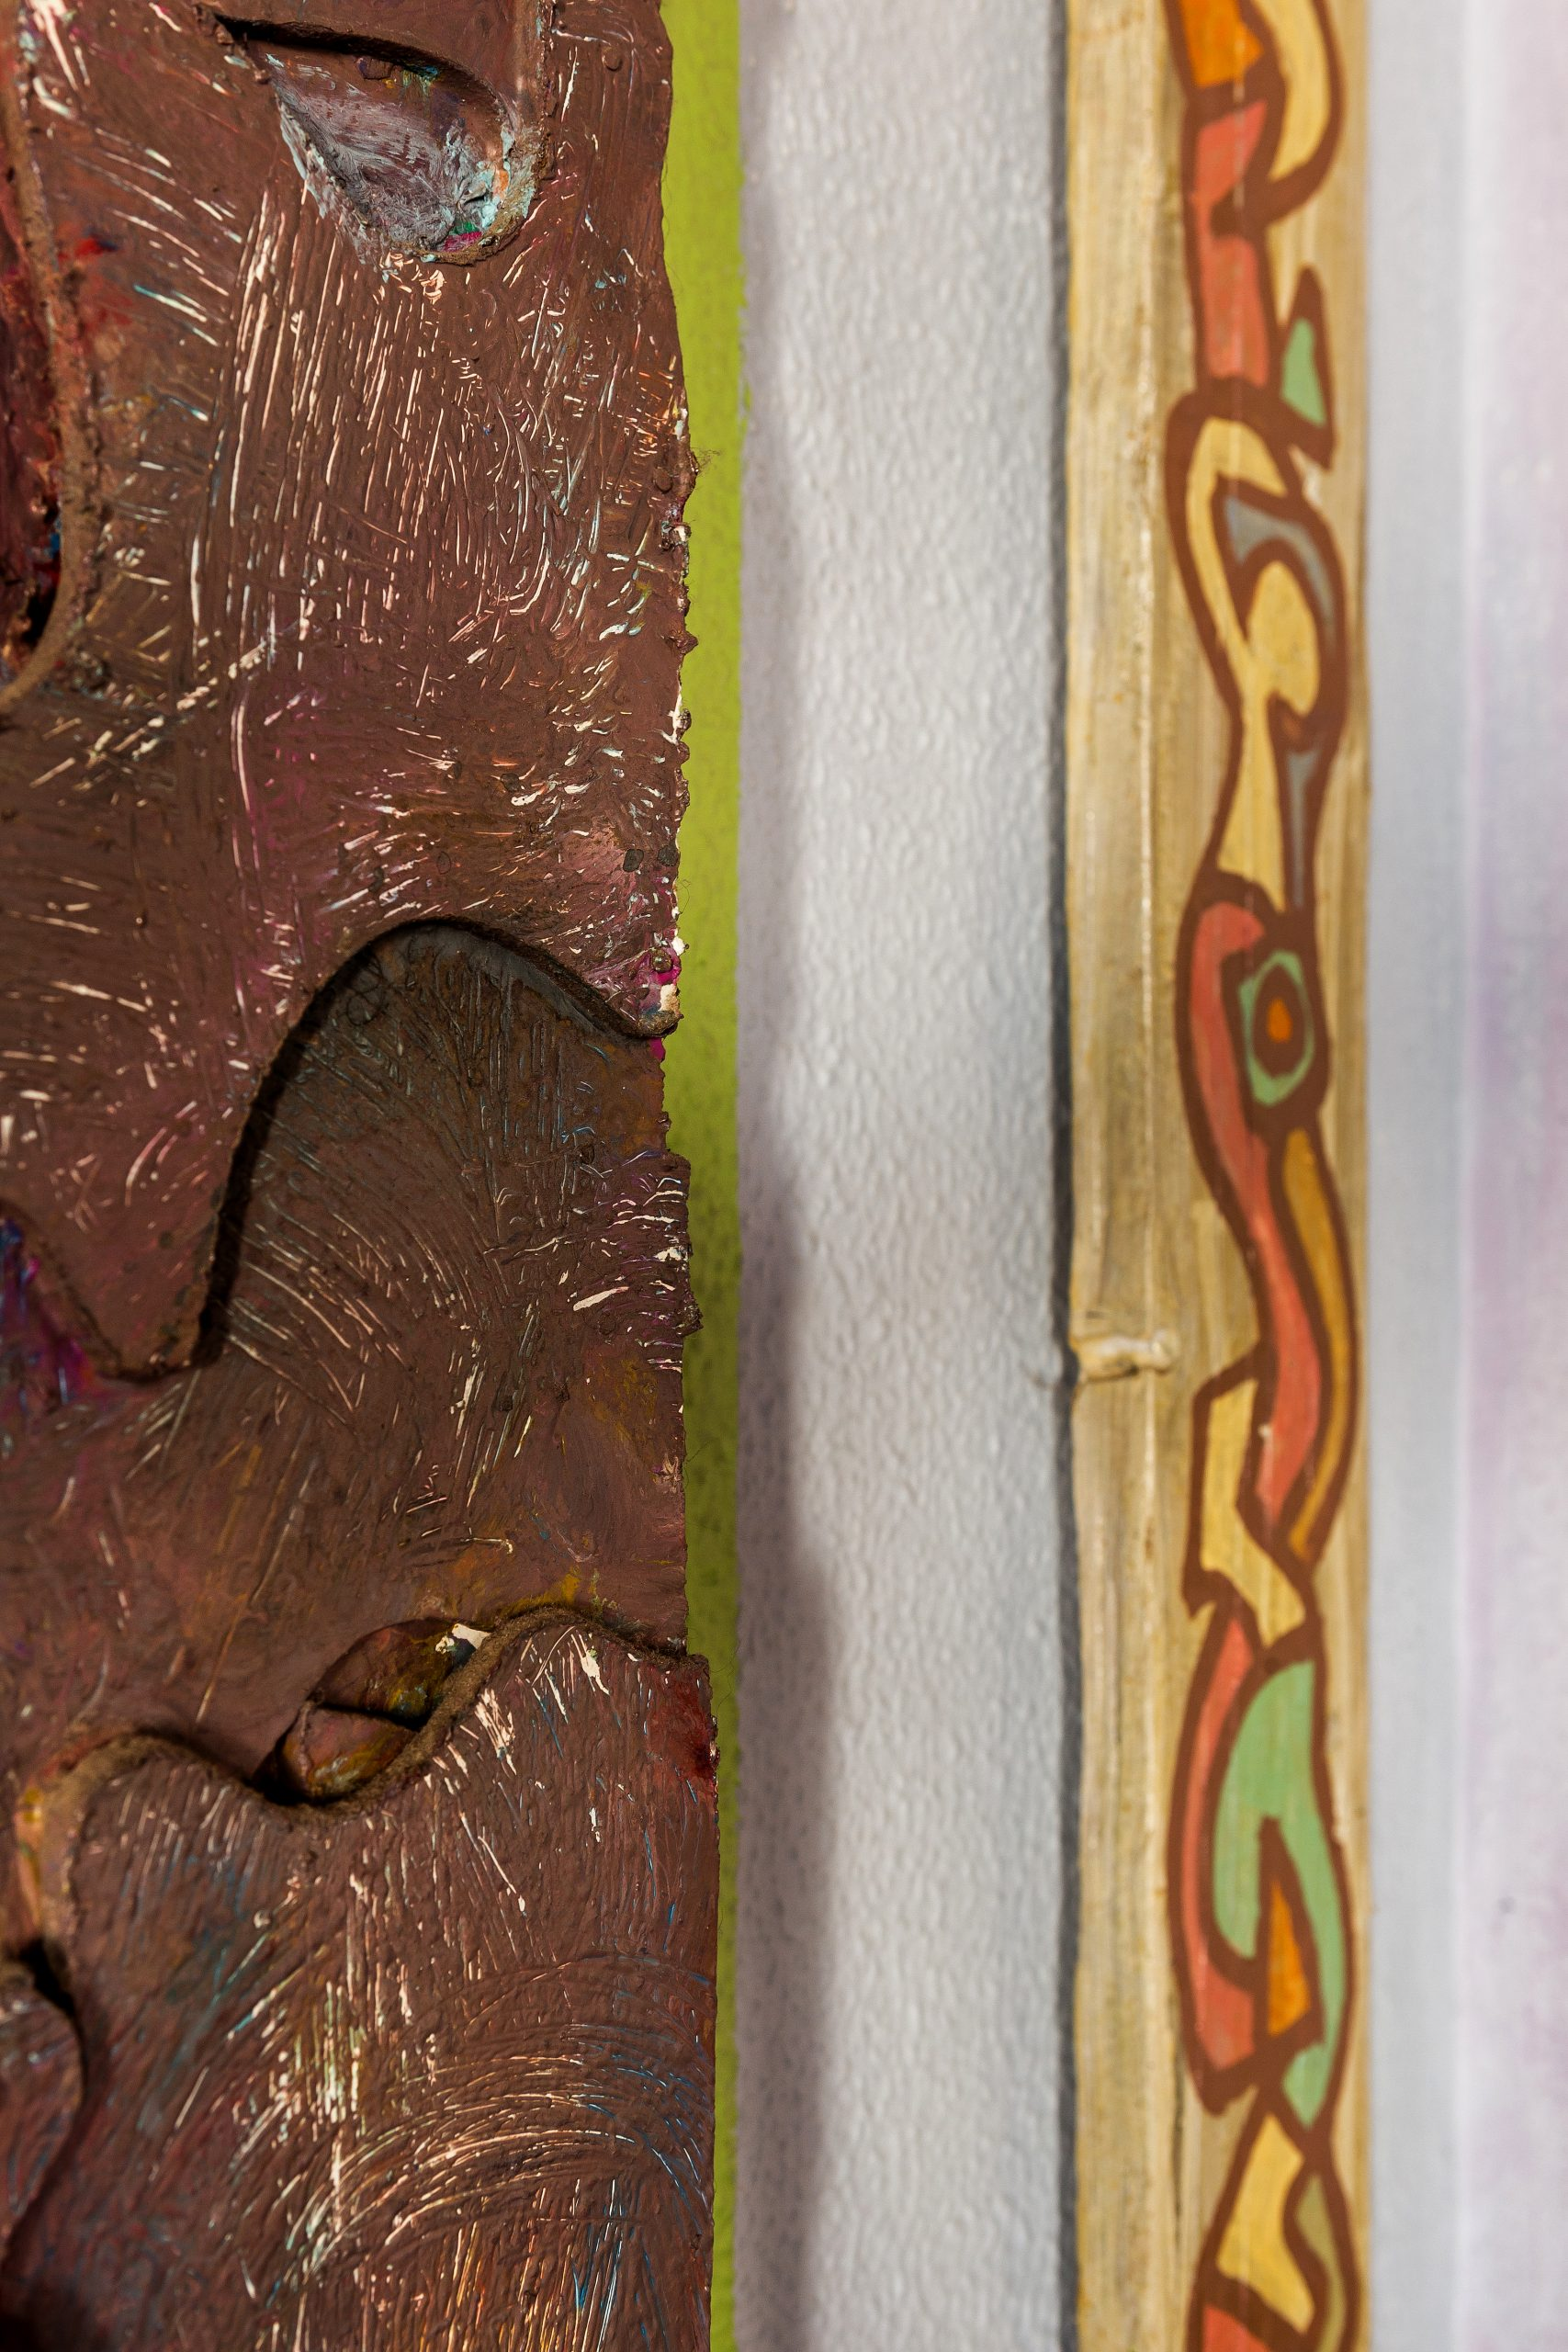 humility and will